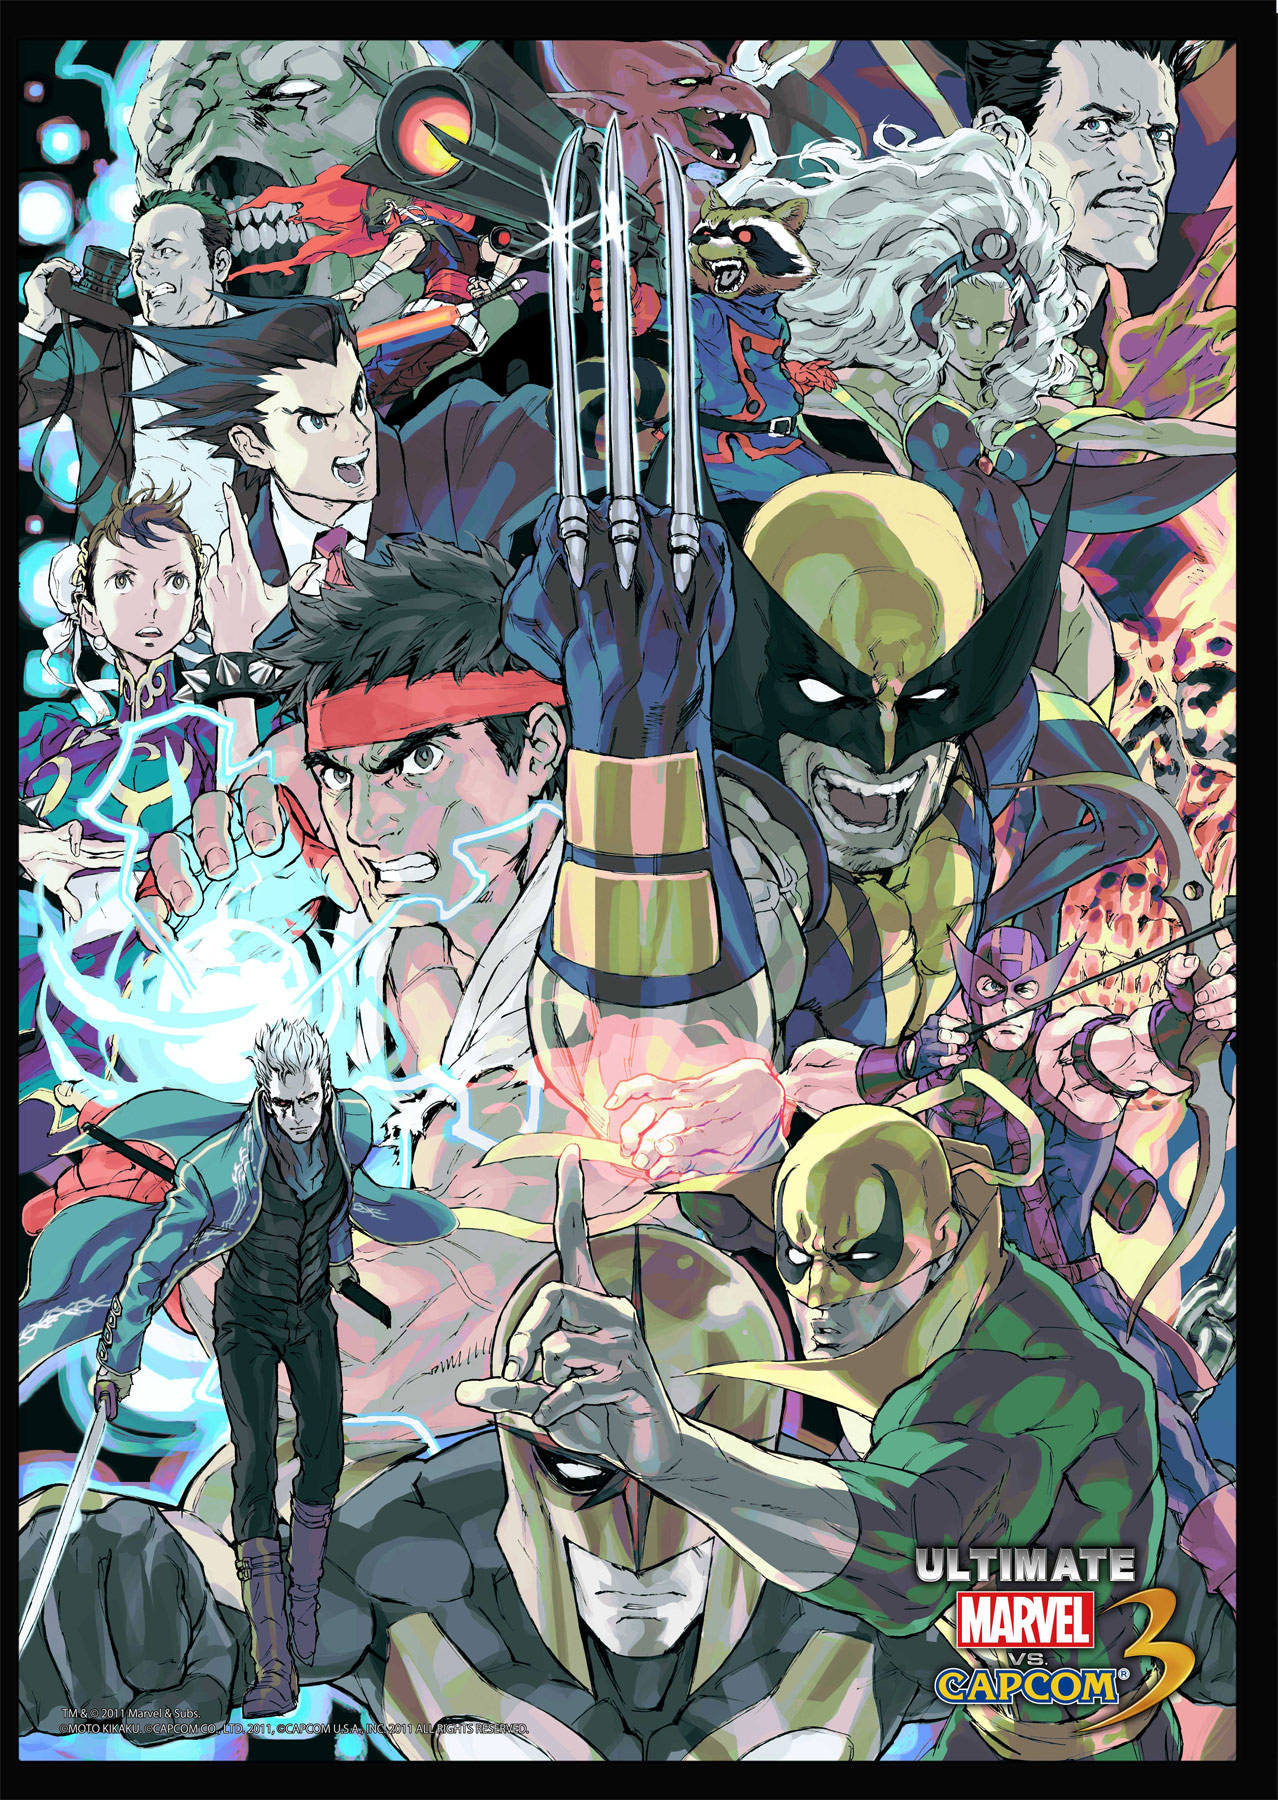 Marvel vs. Capcom 3 Art Gallery 11 out of 16 image gallery